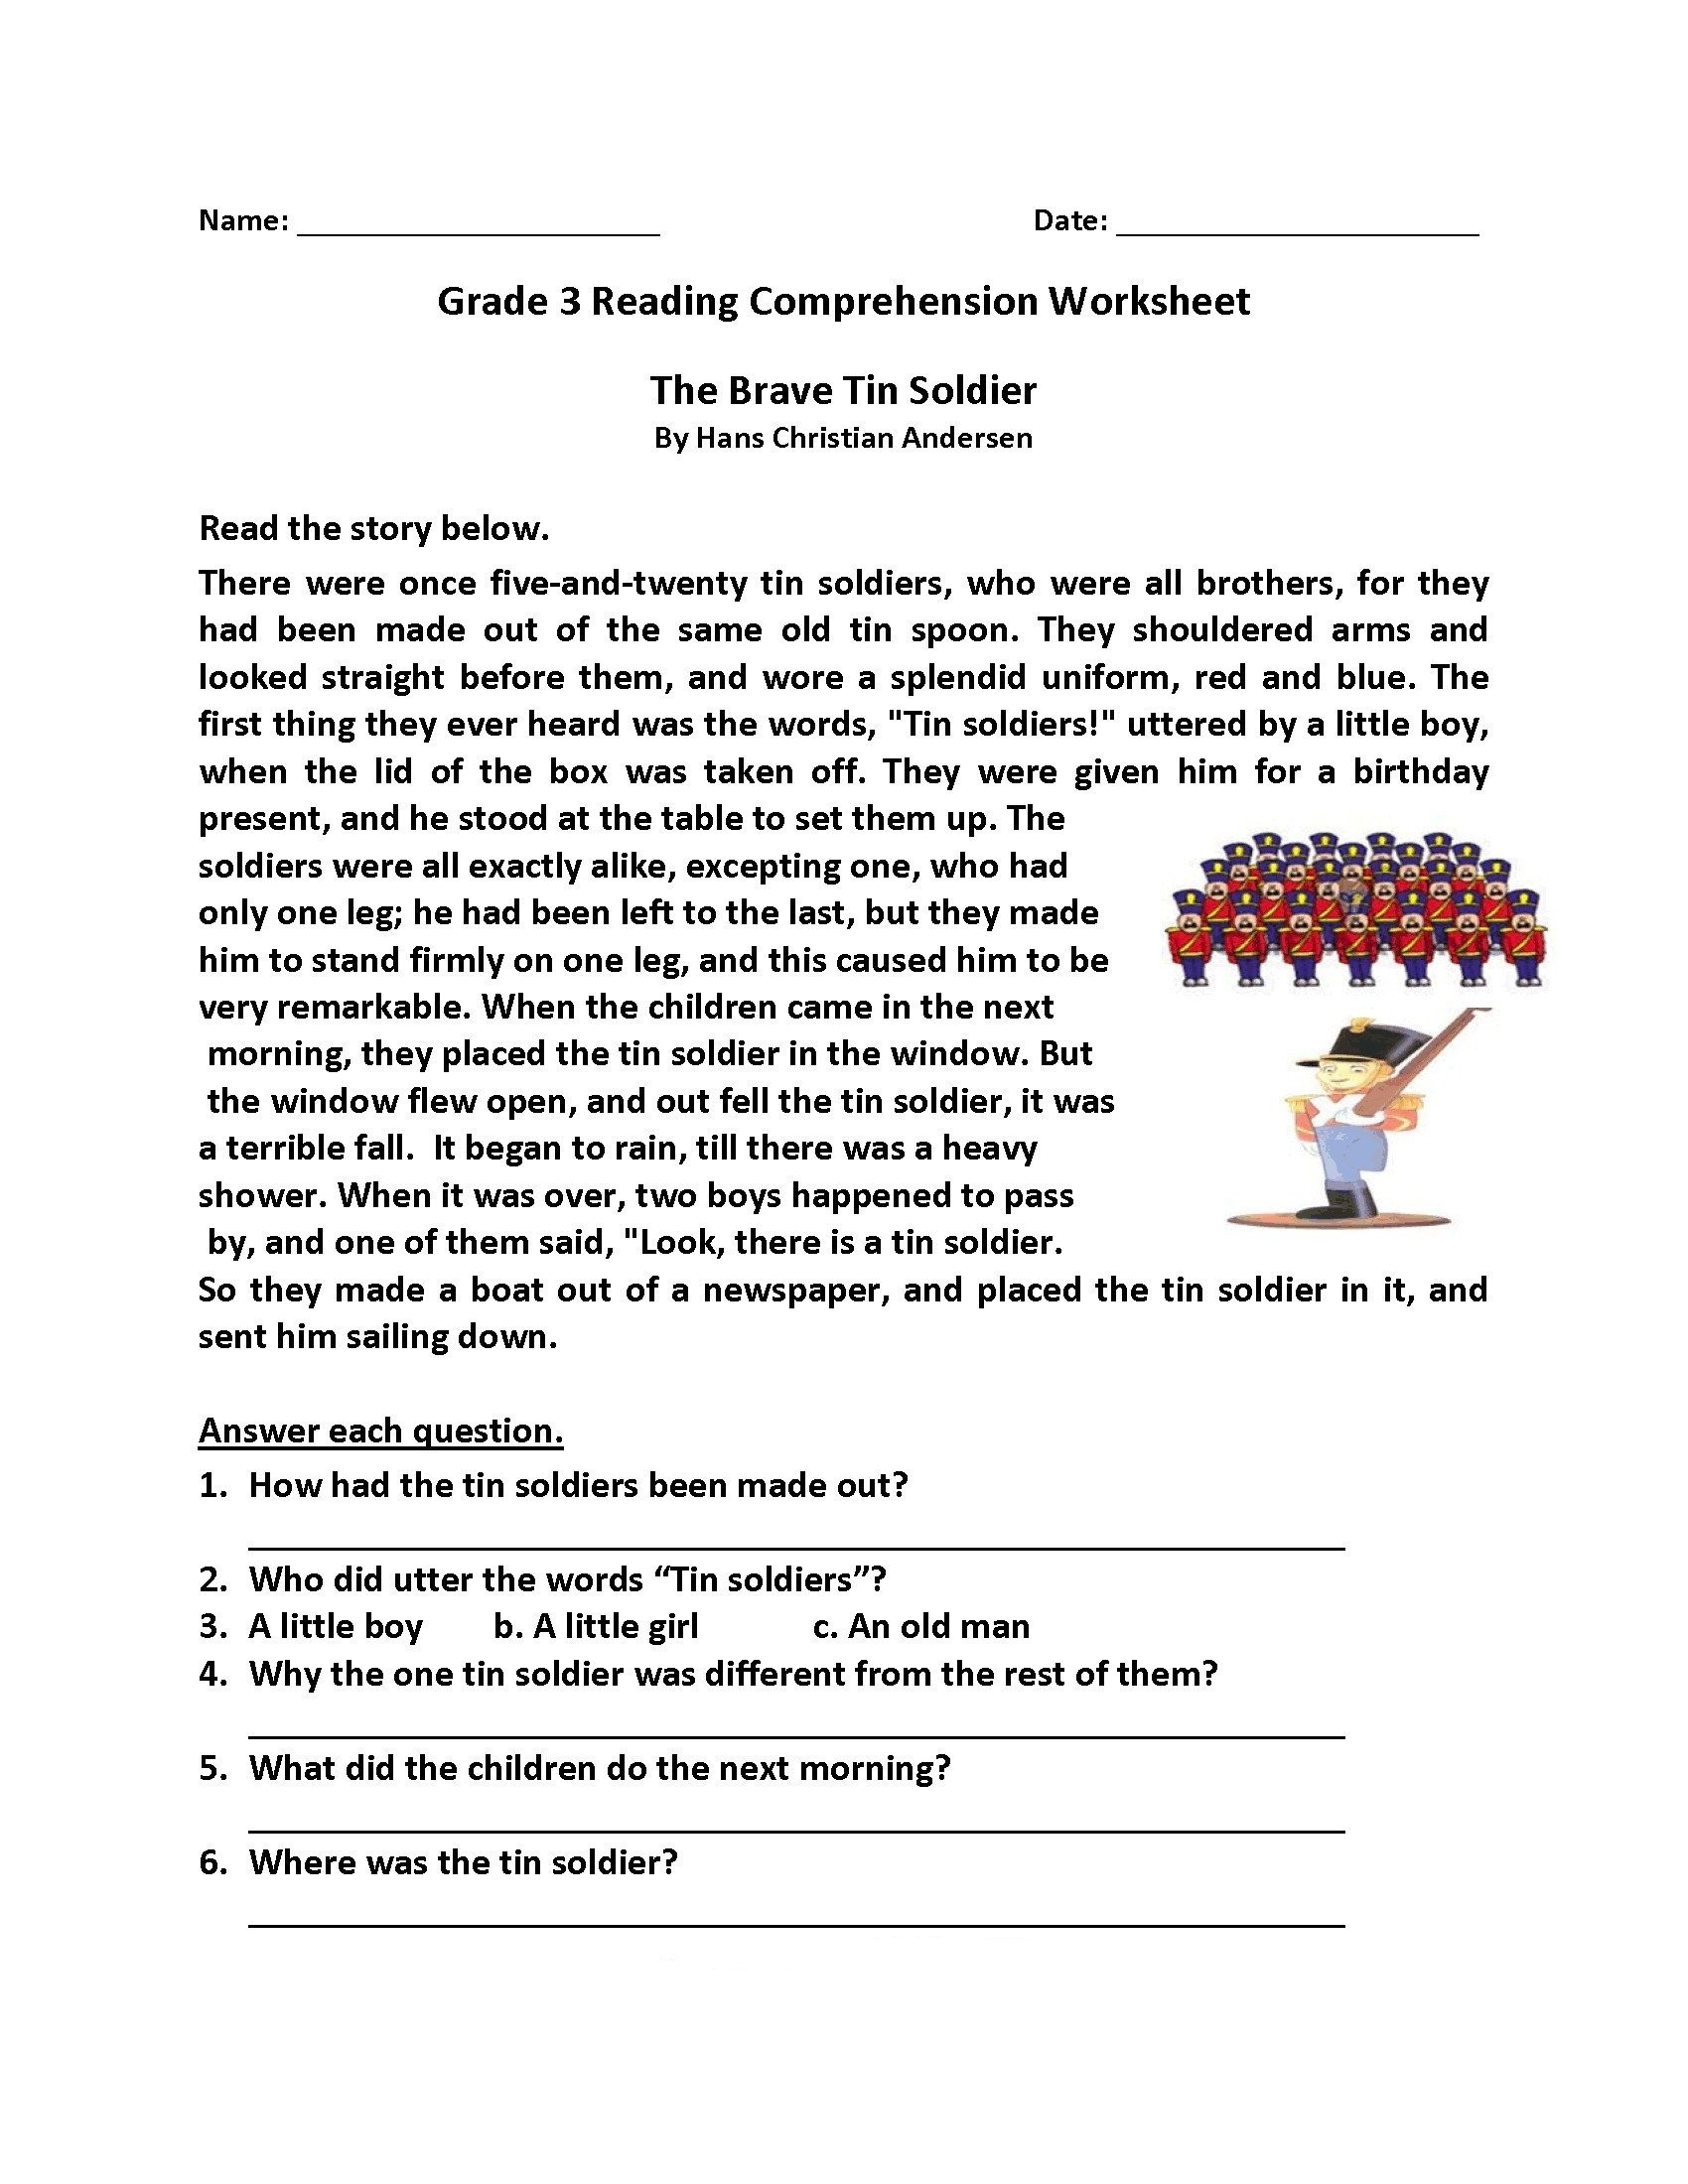 3rd Grade Reading prehension Worksheet